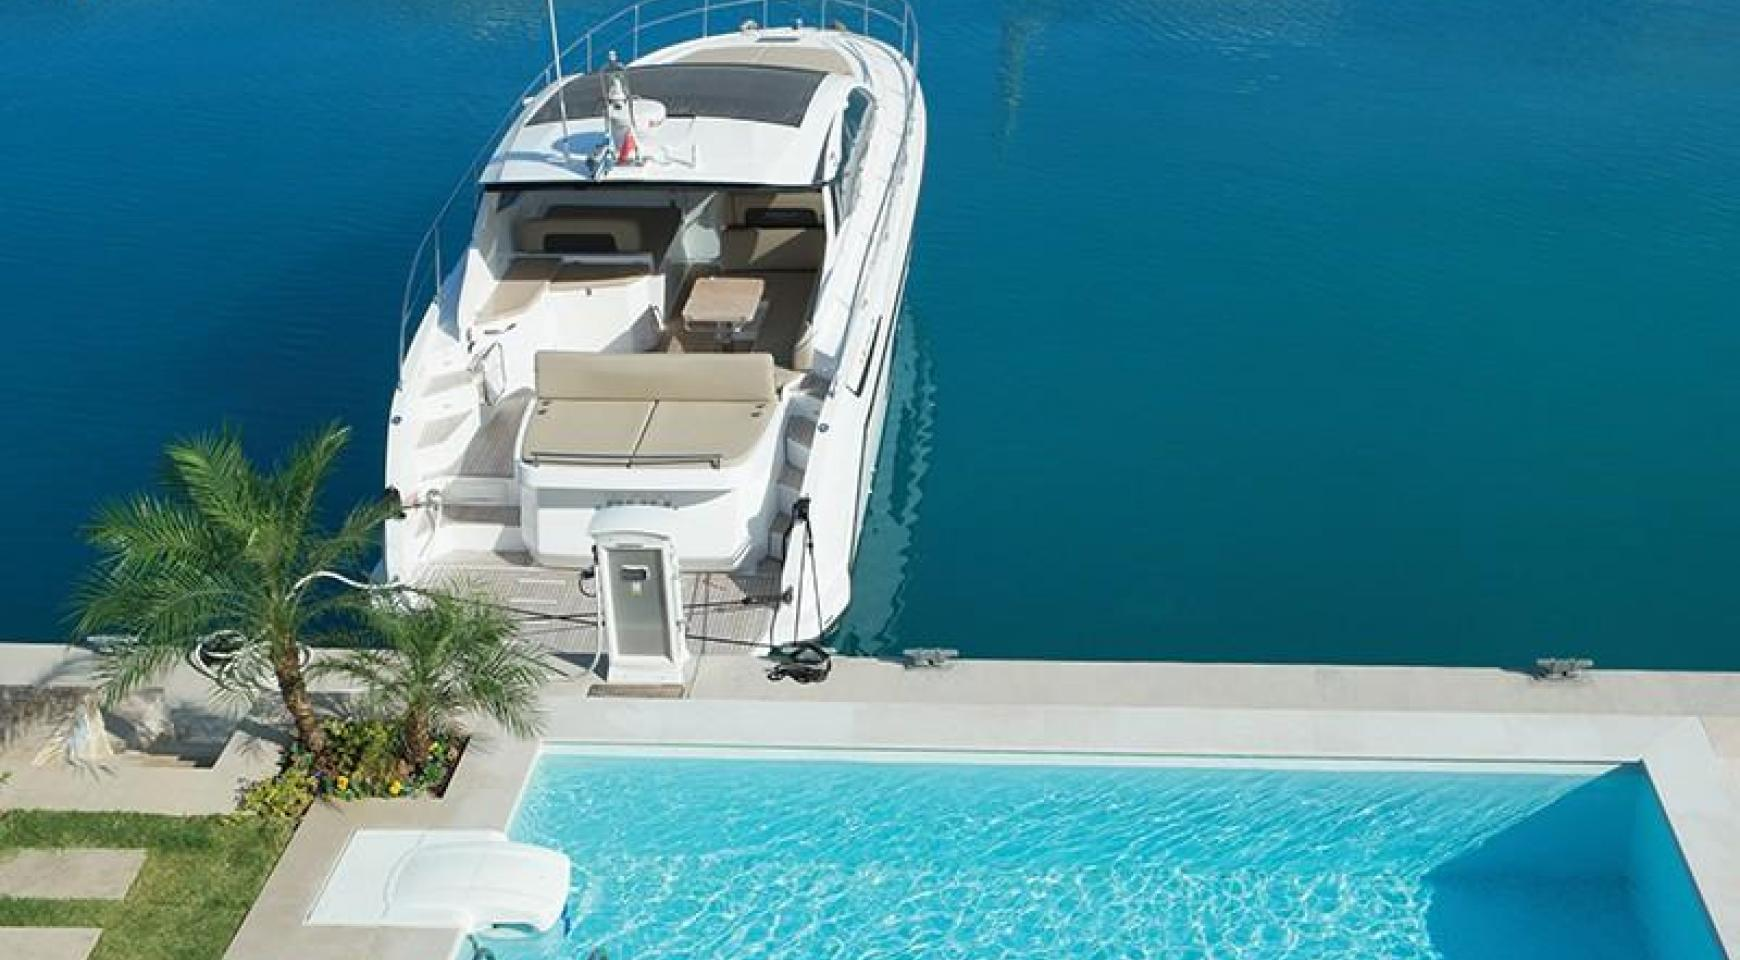 Luxurious 3 Bedroom Villa in an Exclusive development by the Sea - 3